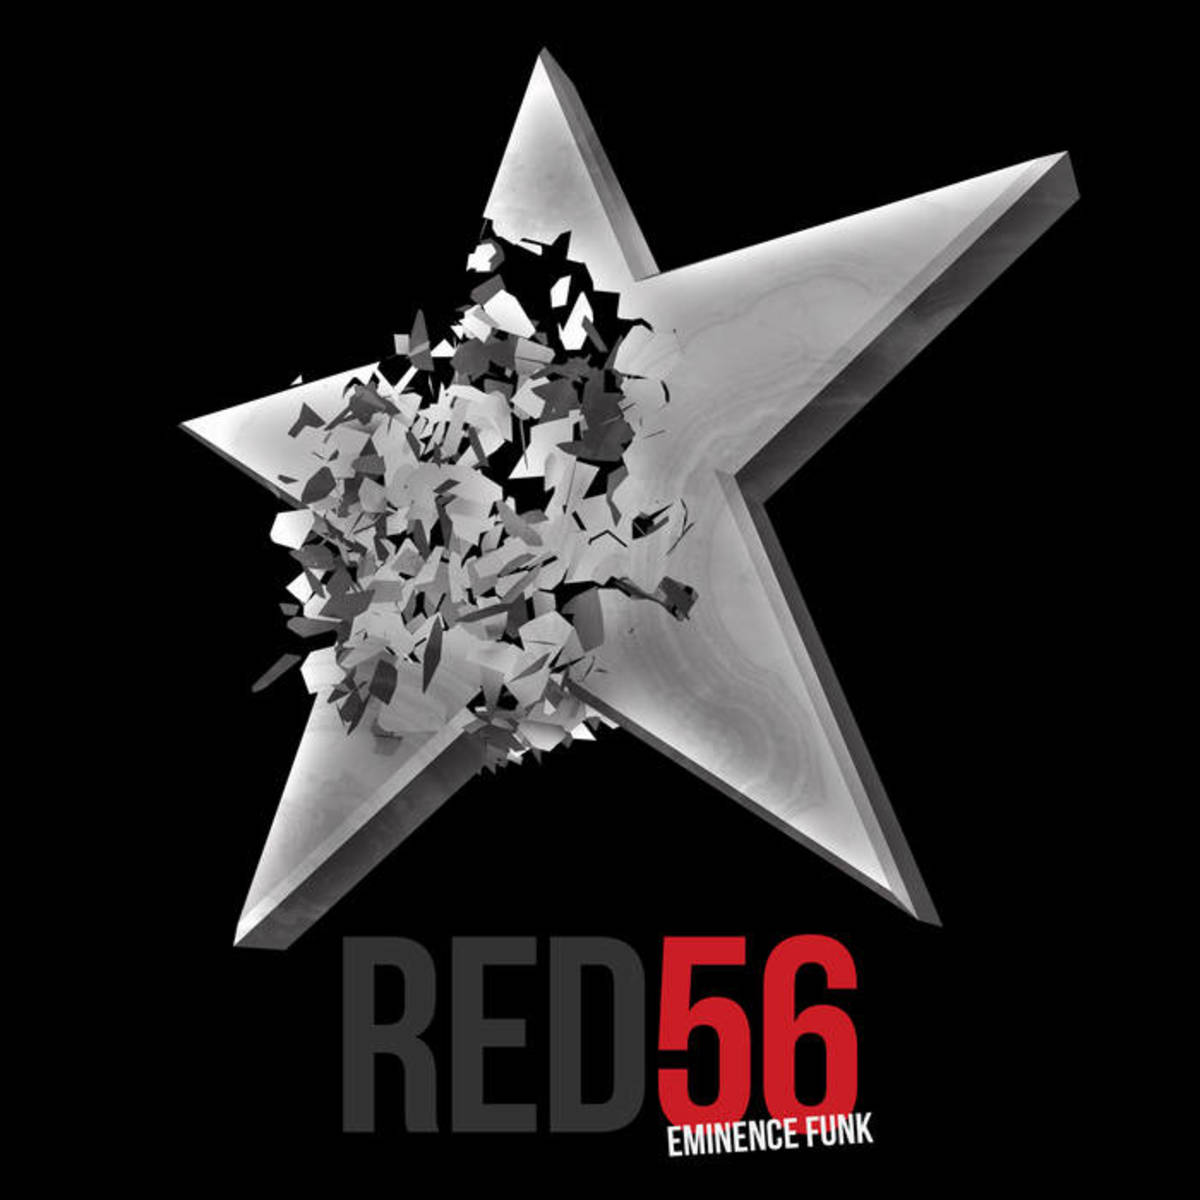 Red 56